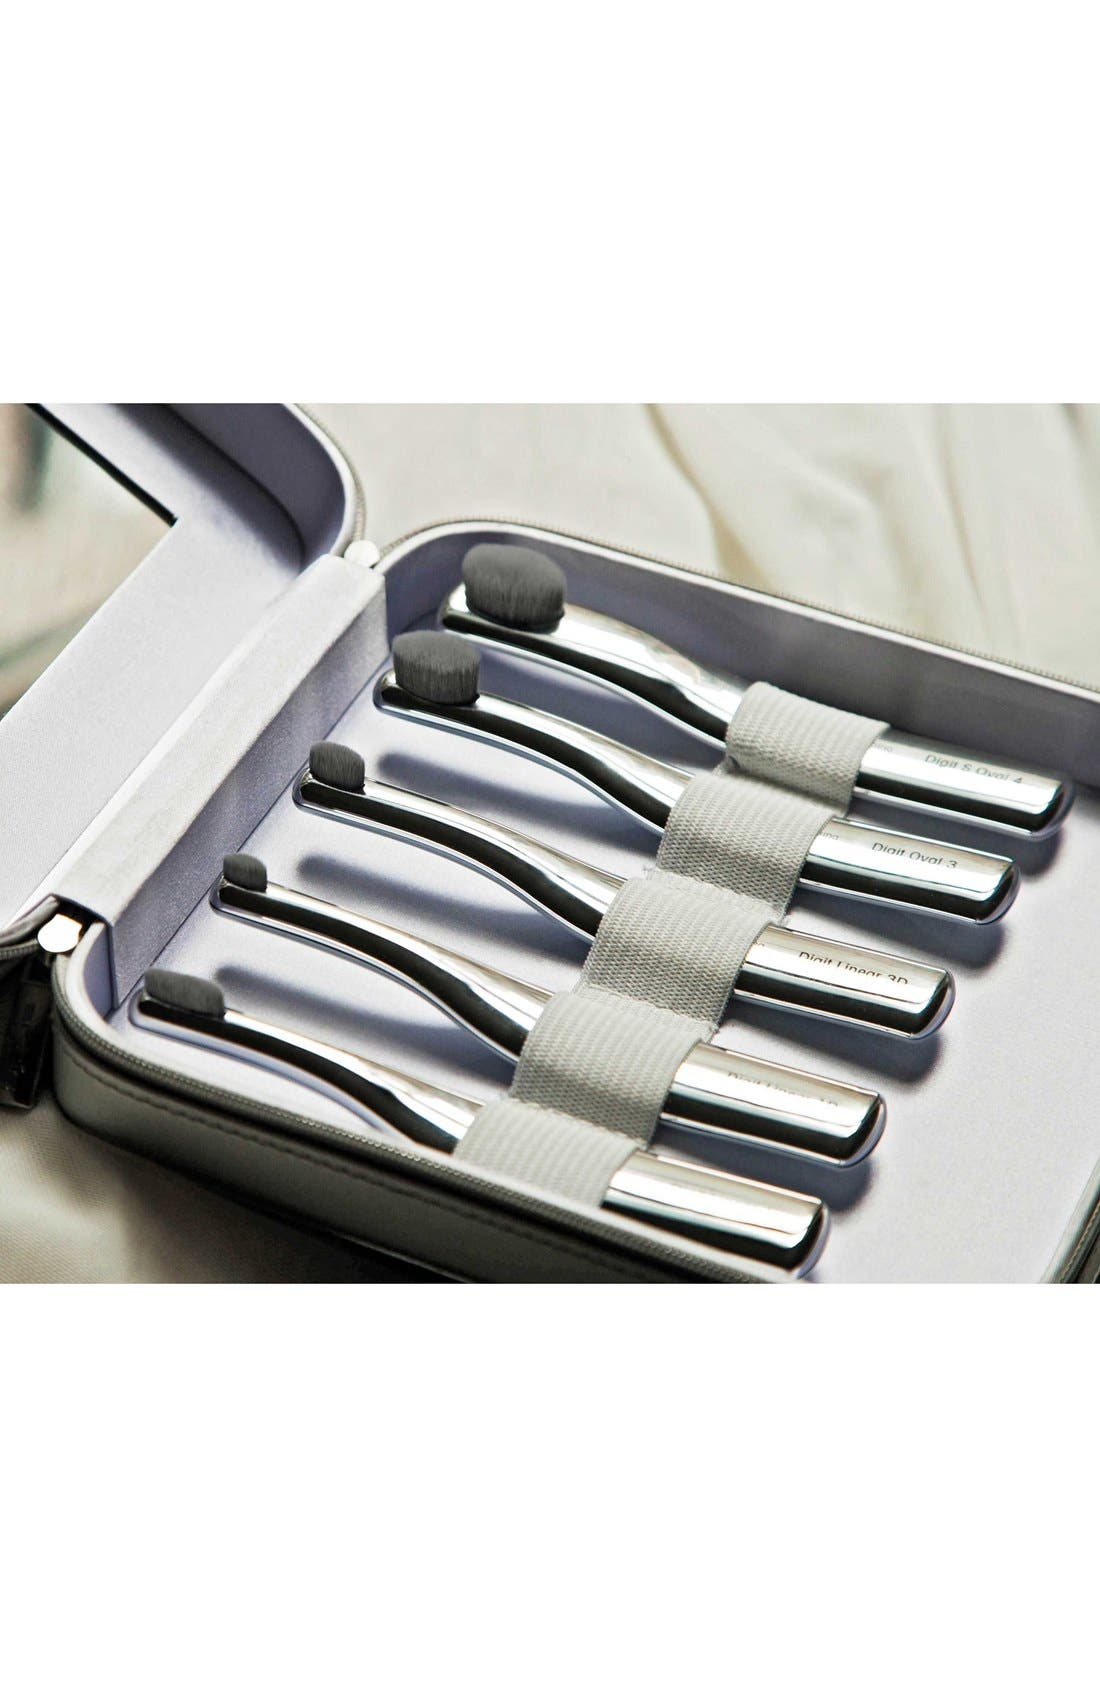 ARTIS, The Digit 5-Brush Set in Luxury Case, Alternate thumbnail 2, color, NO COLOR